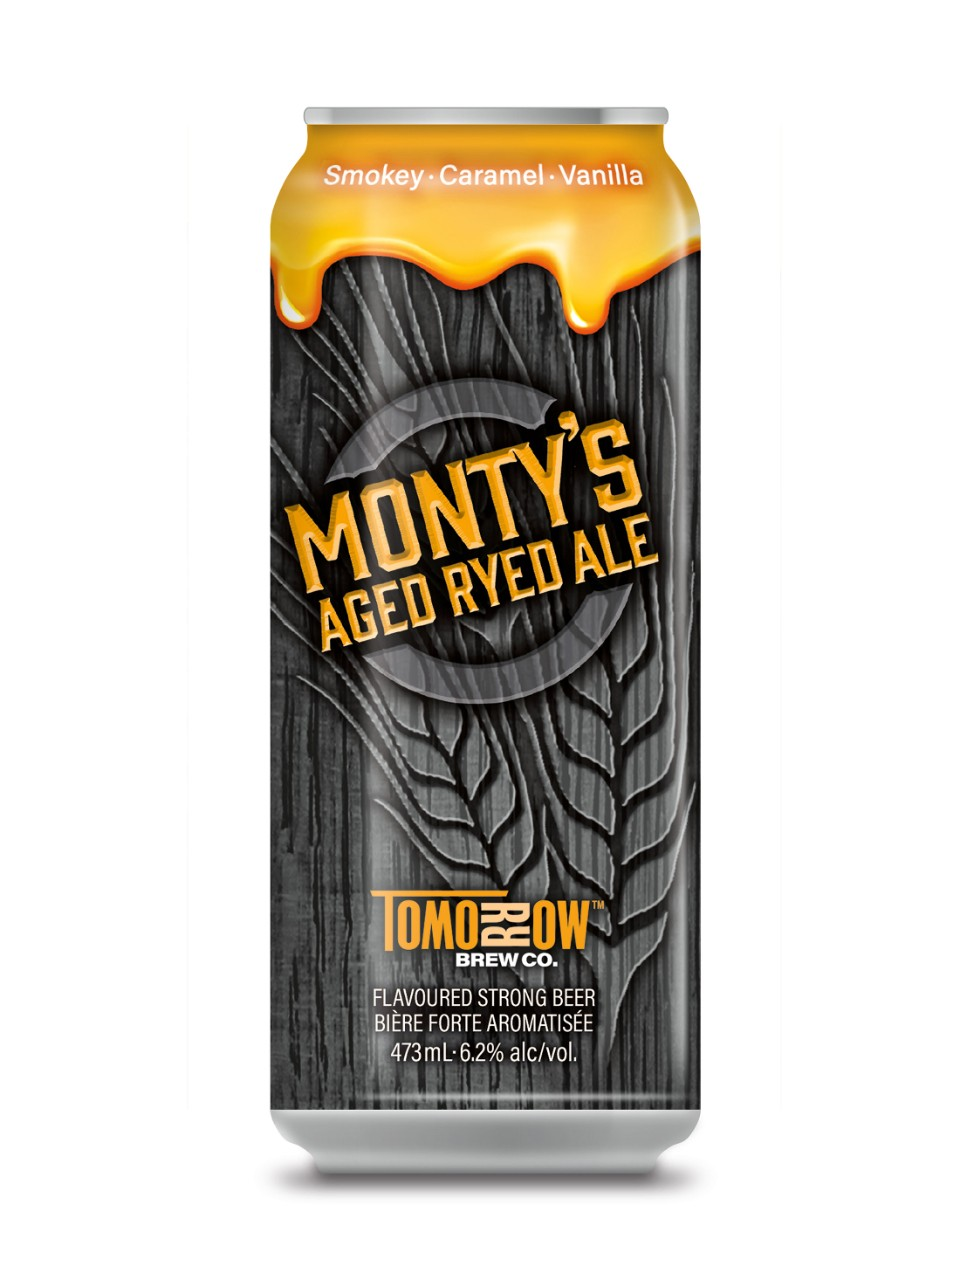 Image for Old Tomorrow Monty's Aged Ryed Ale from LCBO